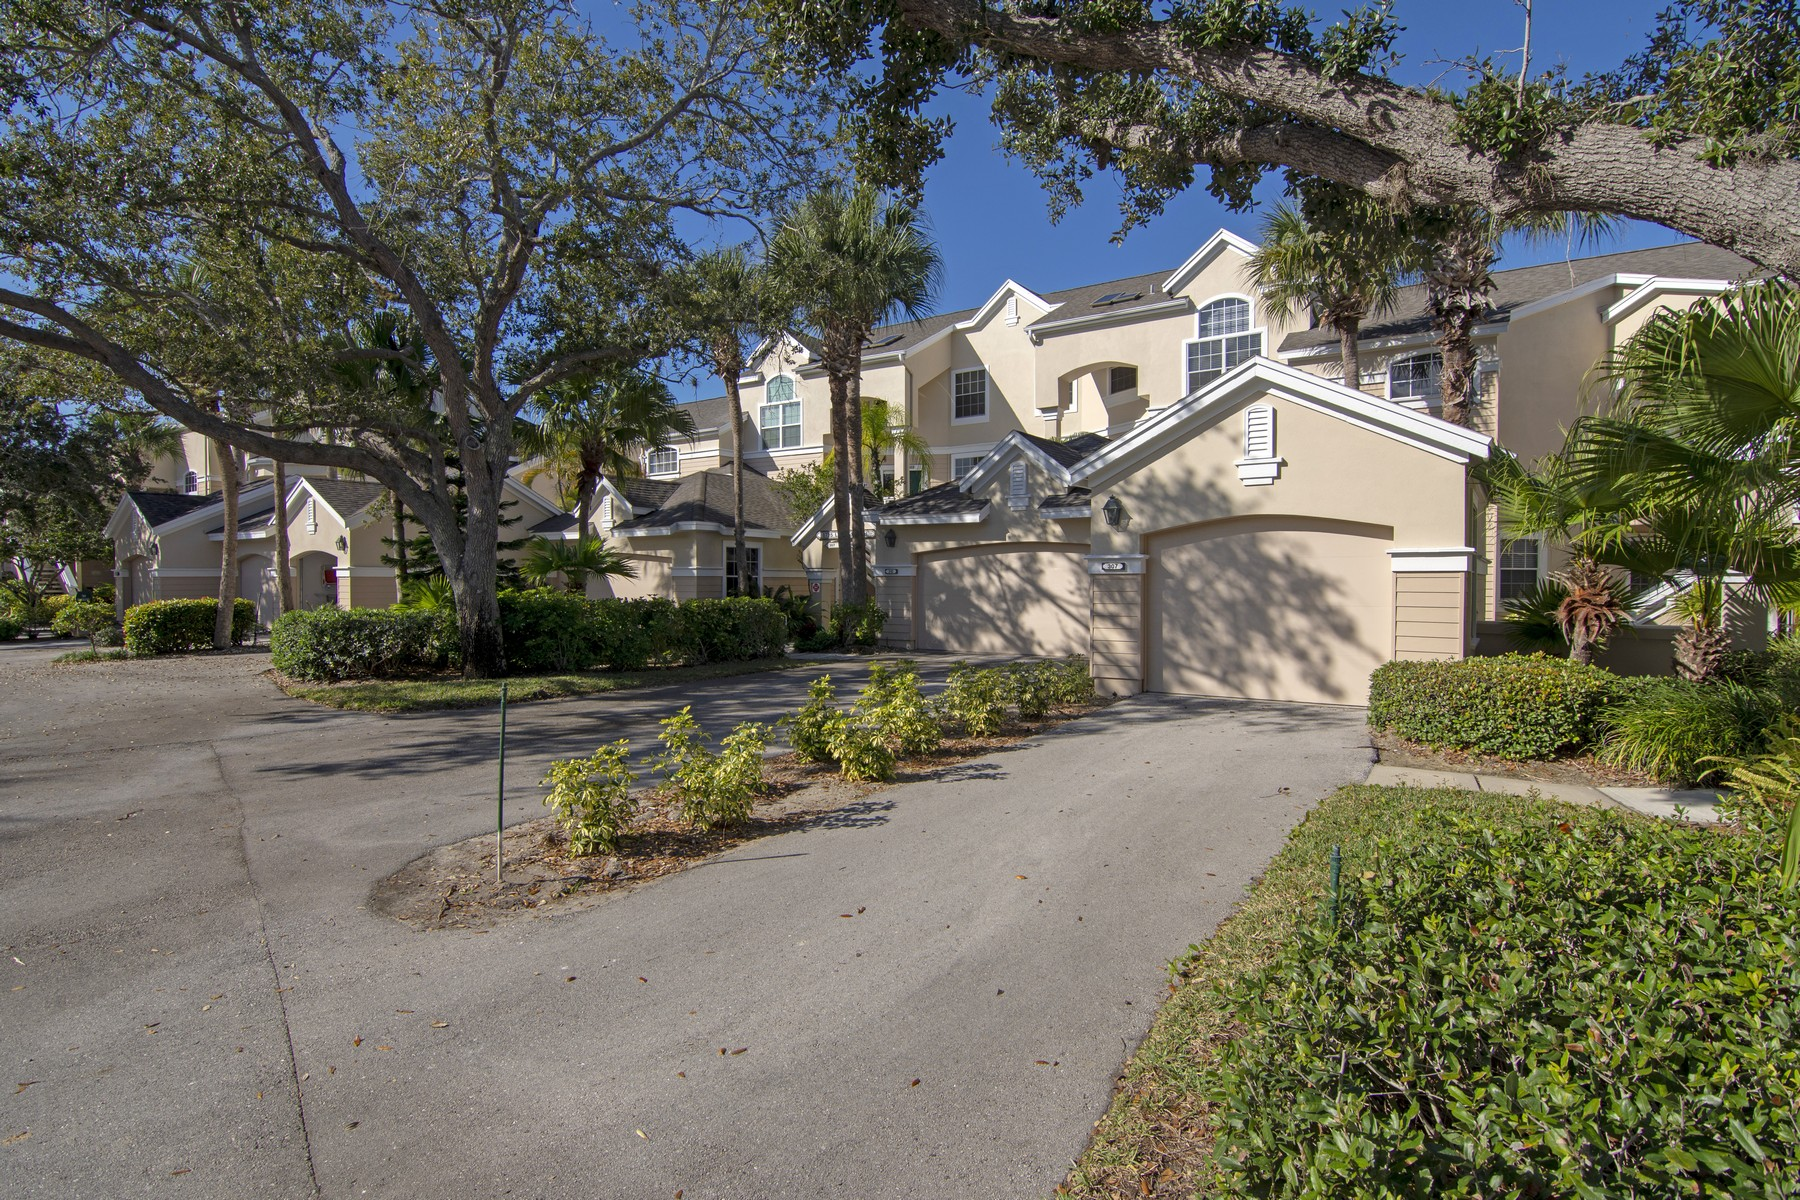 Condominium for Sale at SEA OAKS LAKESIDE VILLA 8725 Lakeside Boulevard #307 Vero Beach, Florida 32963 United States